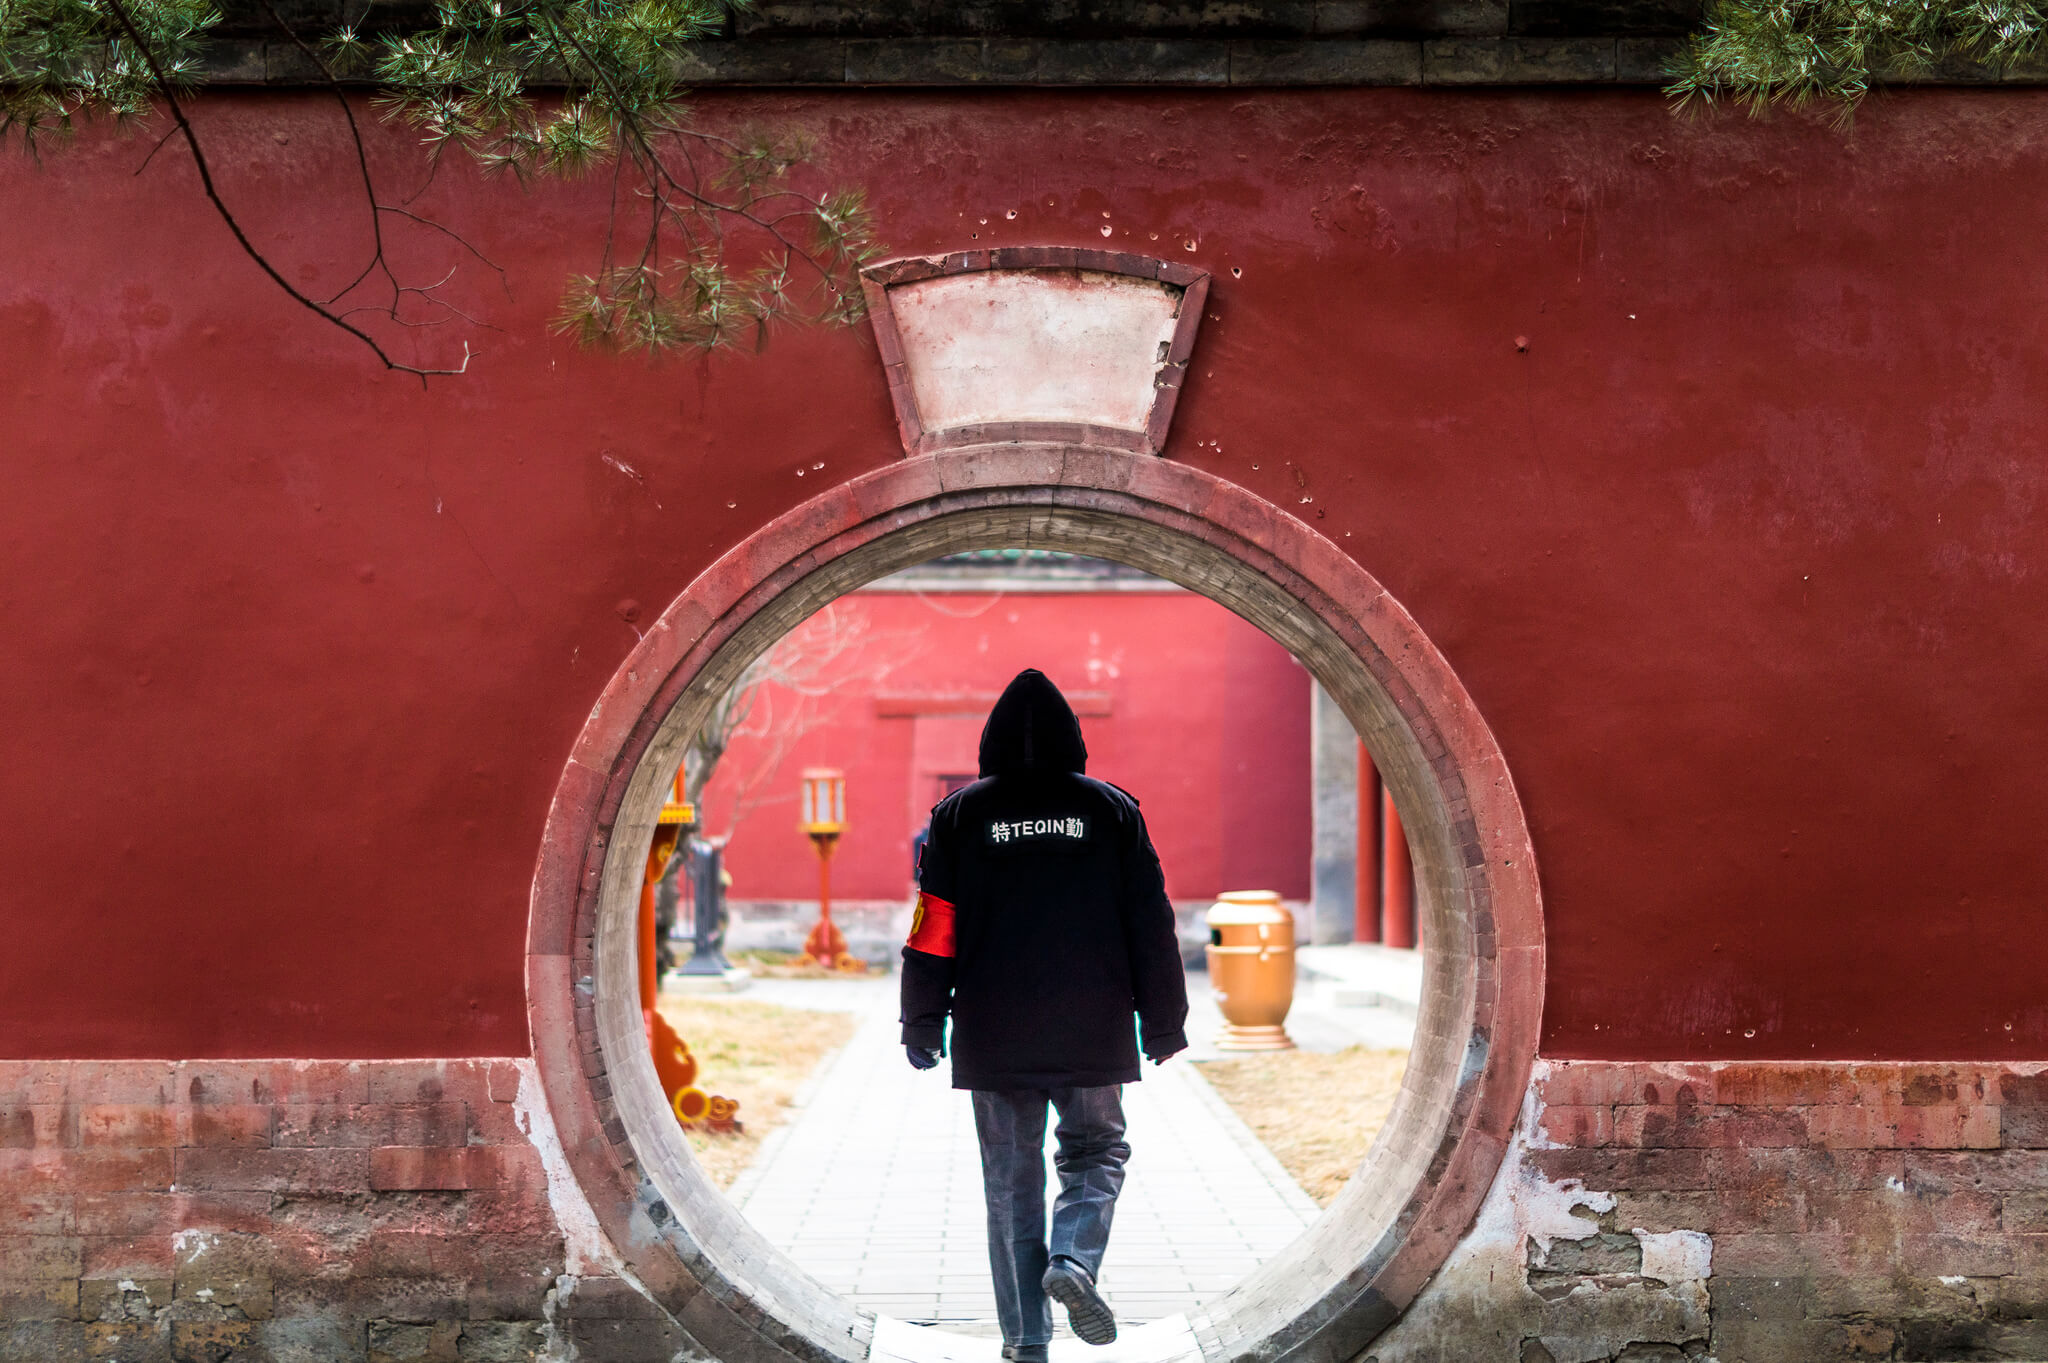 Know before you go! Tips for traveling to Beijing